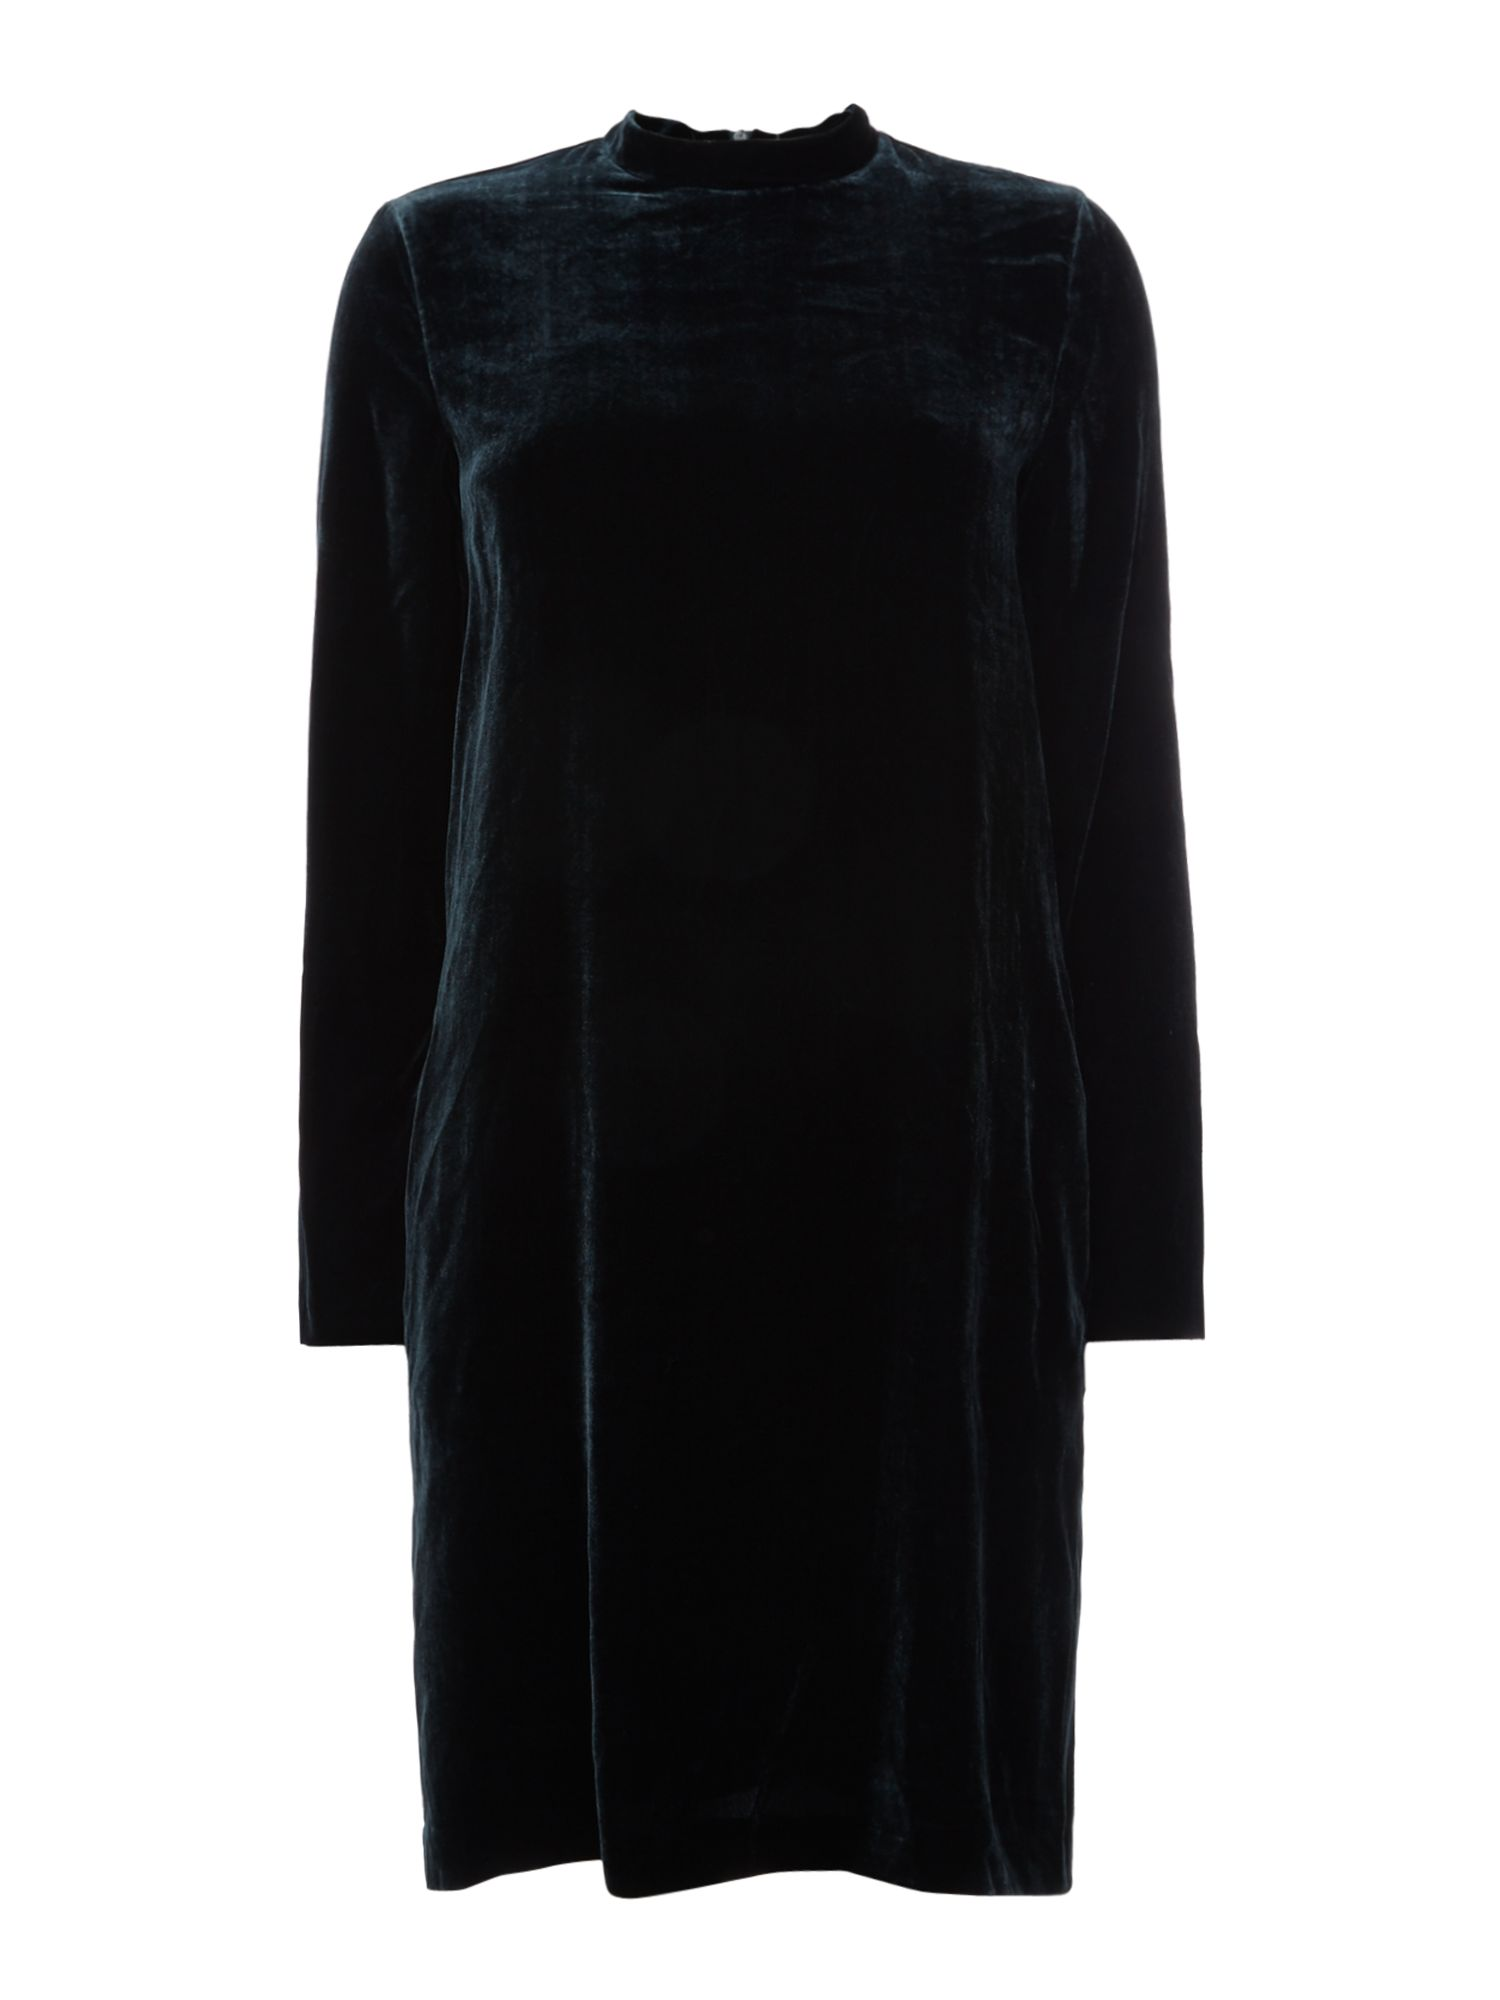 Max Mara Studio Odile velvet dress, Dark Green